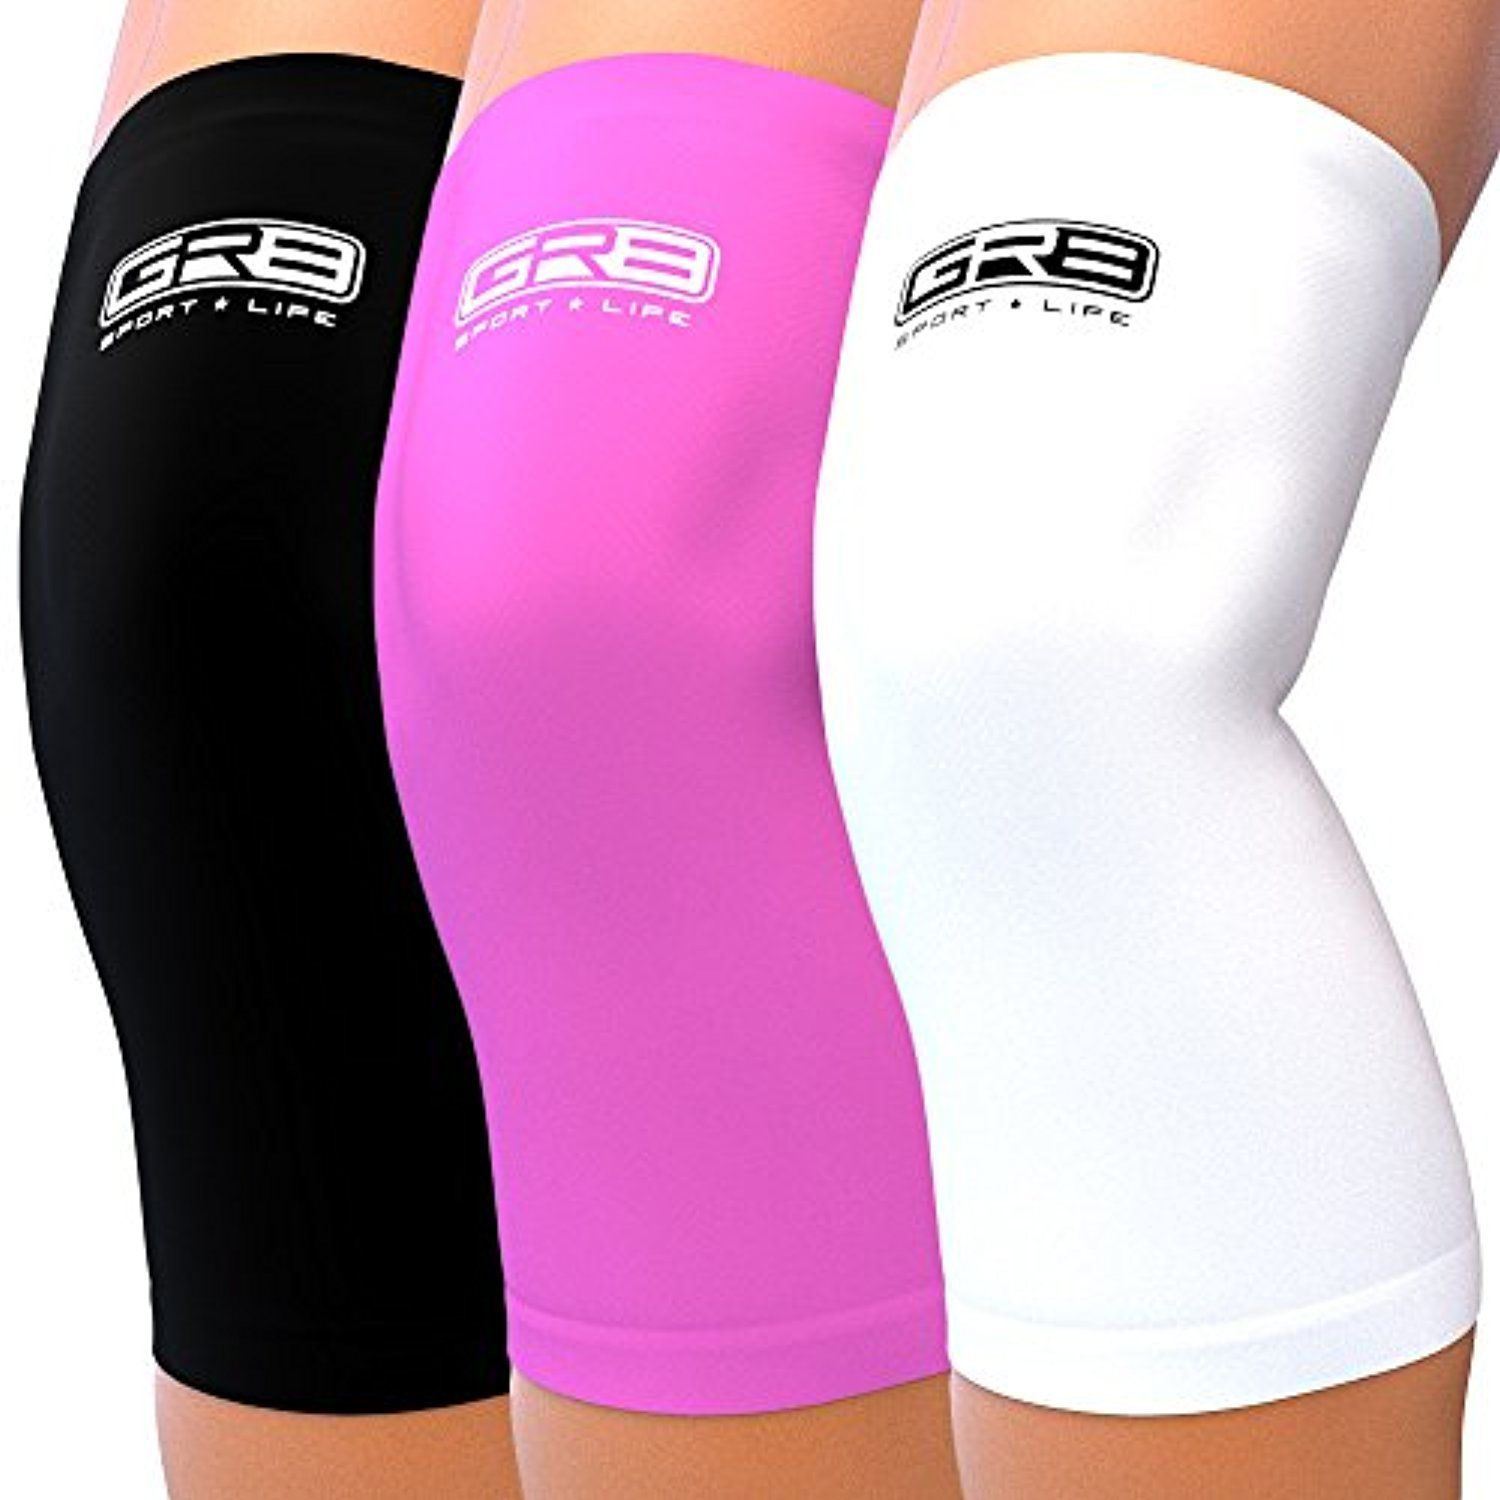 Knee Brace Compression Sleeves Negative Ion Support Crossfit